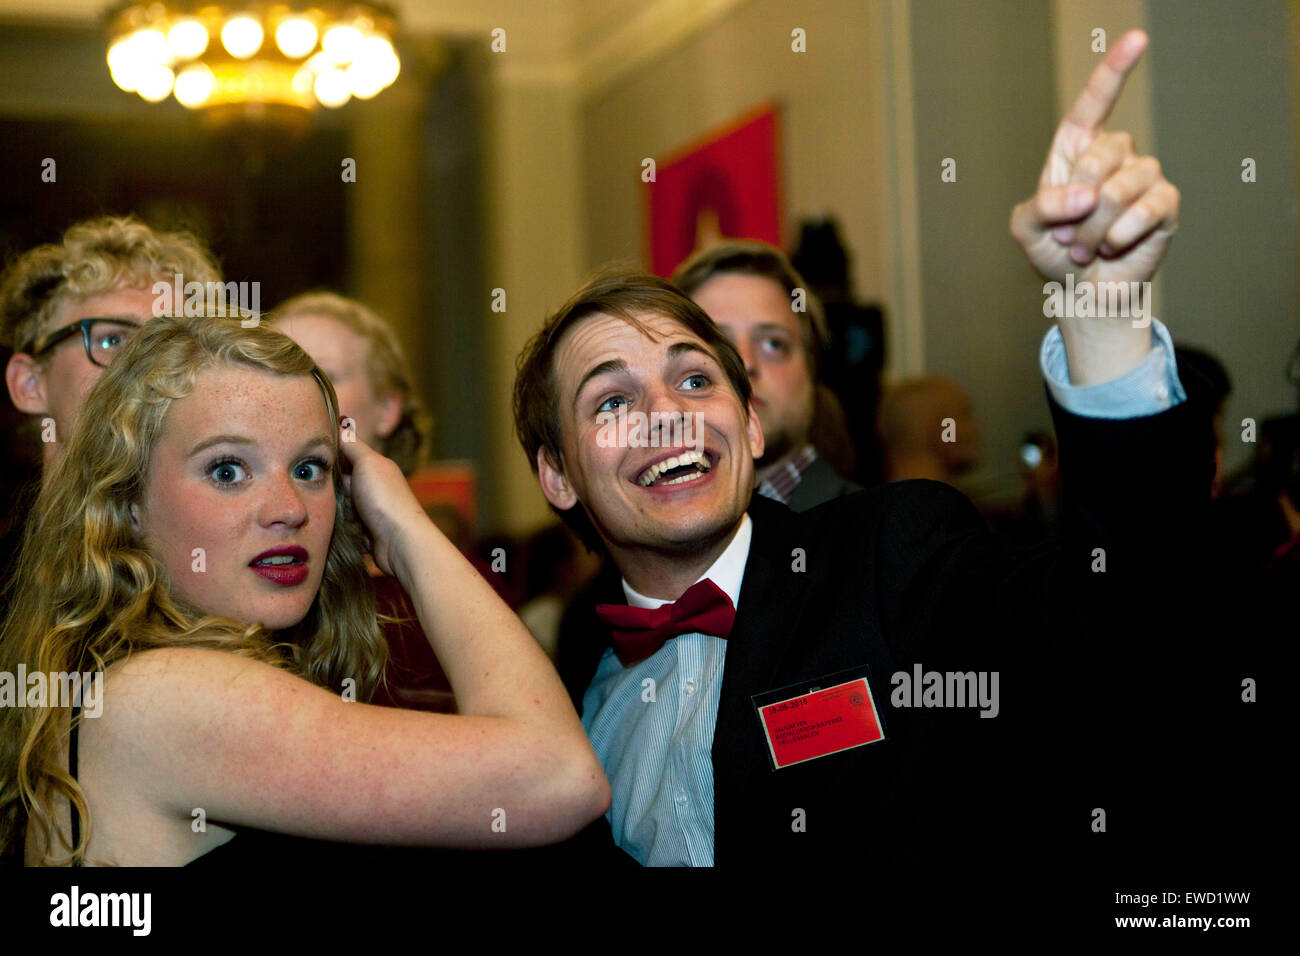 Copenhagen, Denmark, June 18th, 2015: Young Social Democratic Party members reacts enthusiastic to a regional election - Stock Image